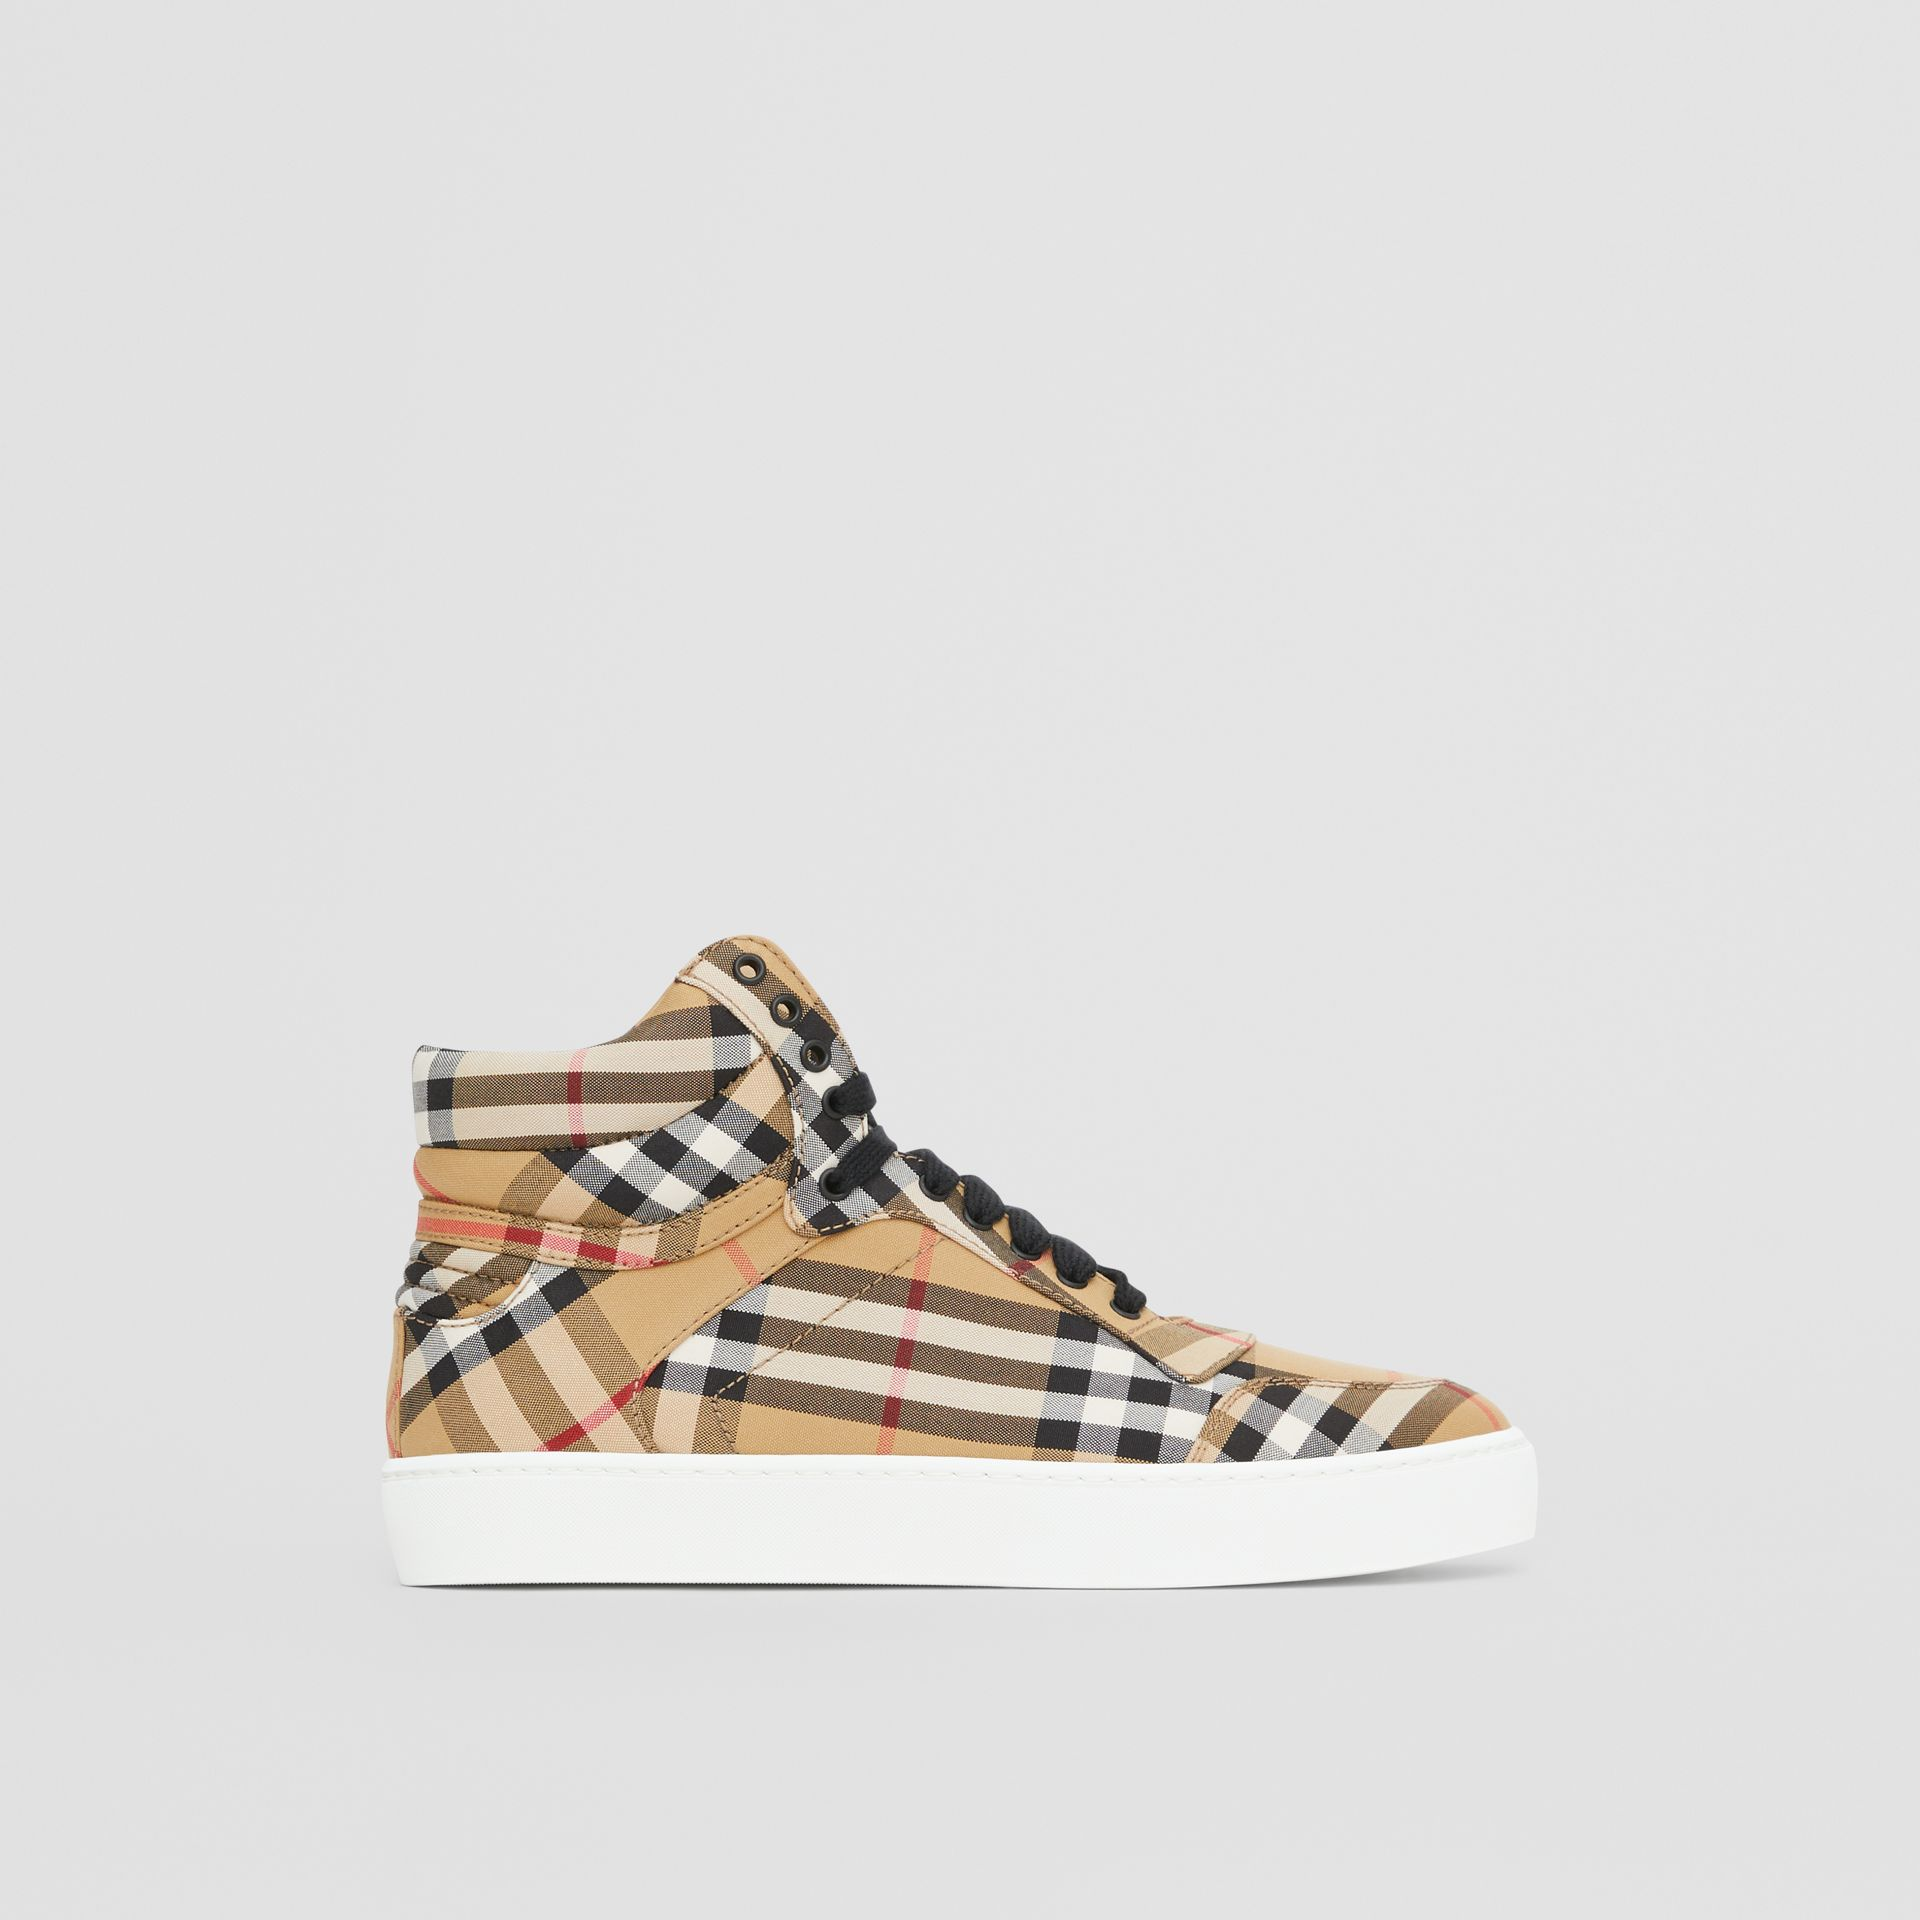 Vintage Check Cotton High-top Sneakers in Antique Yellow - Women | Burberry Singapore - gallery image 5